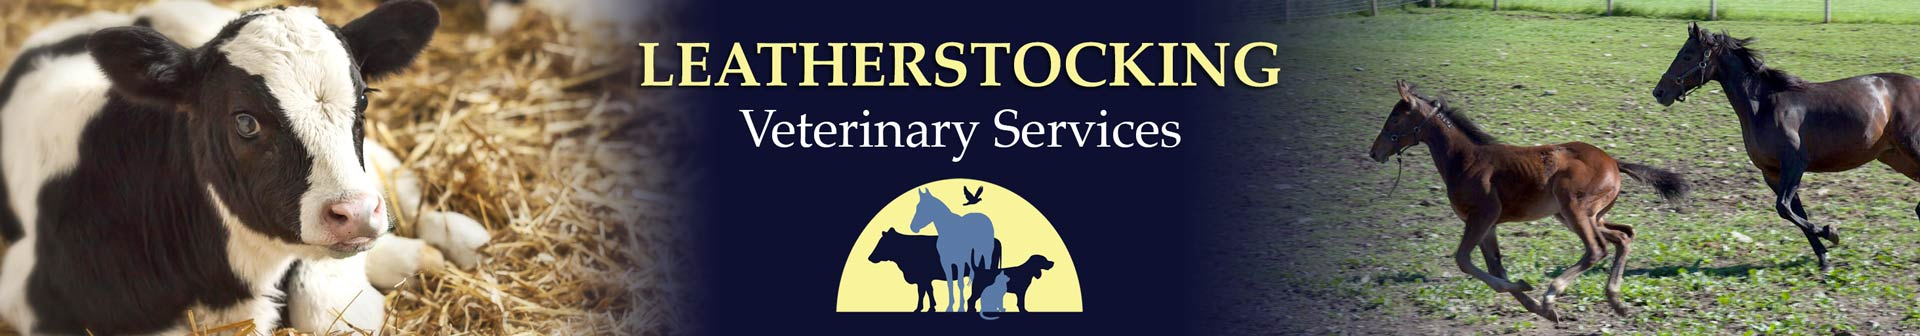 Leatherstocking Veterinary Services